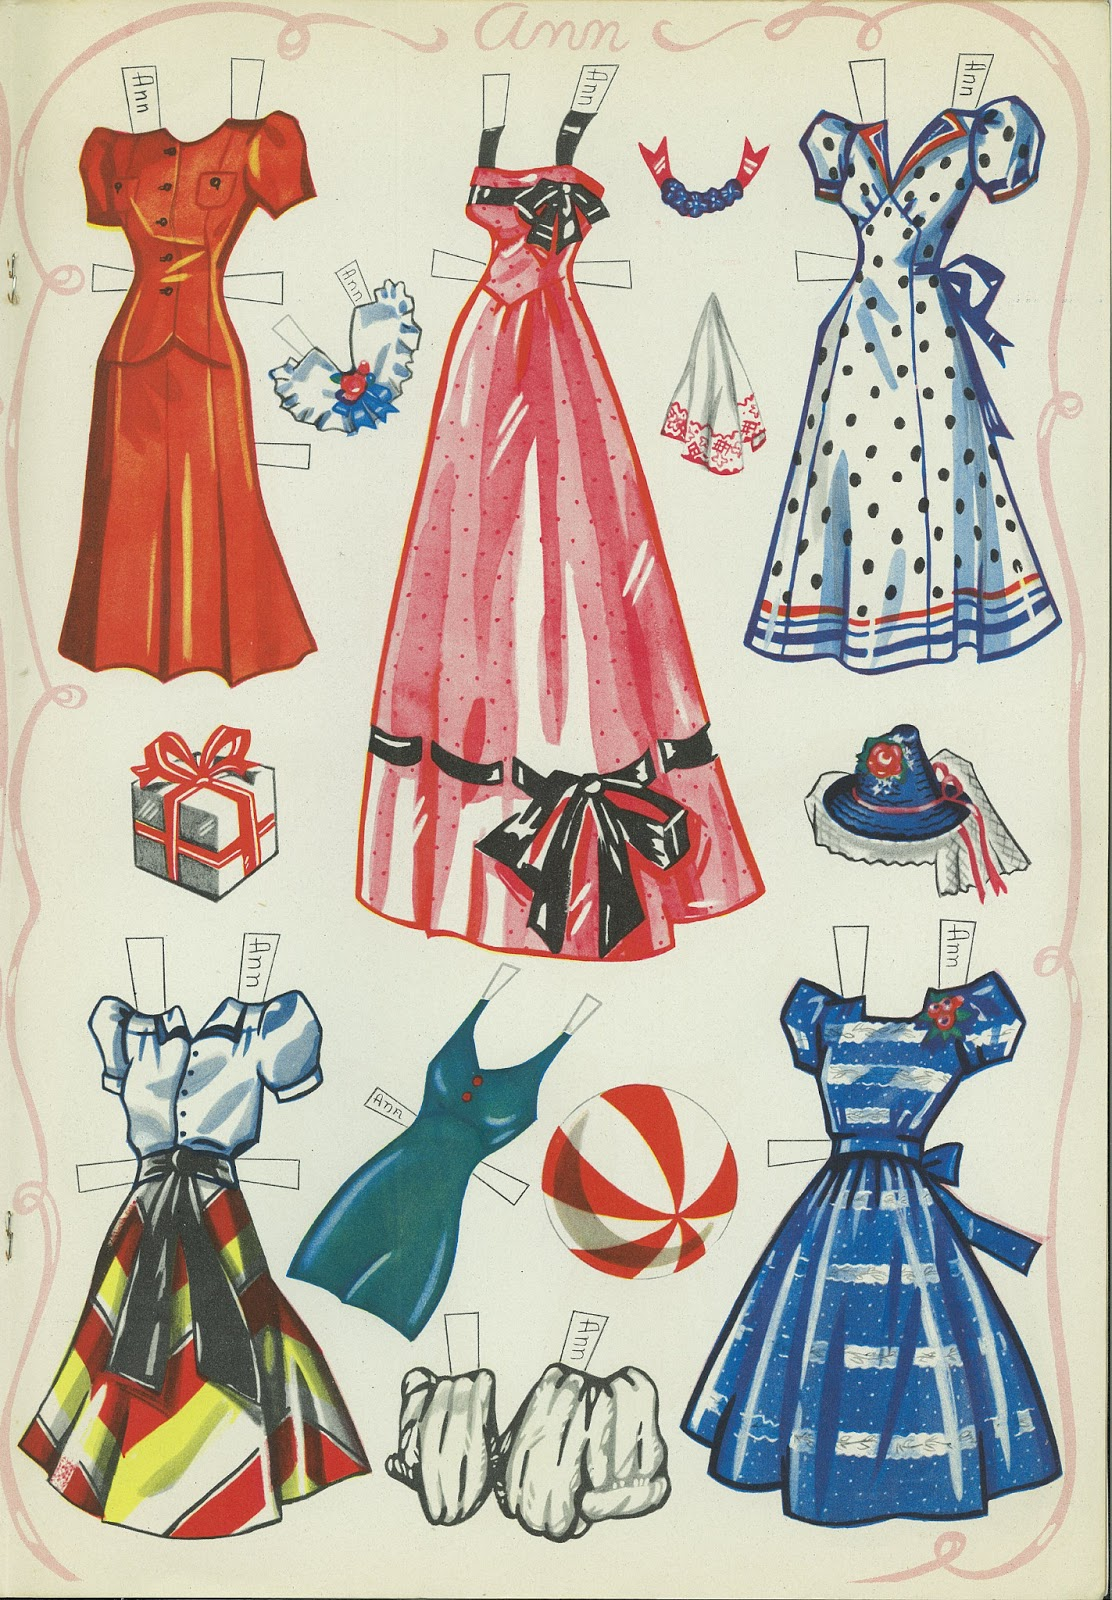 Miss Missy Paper Dolls: Paper dolls on Parade